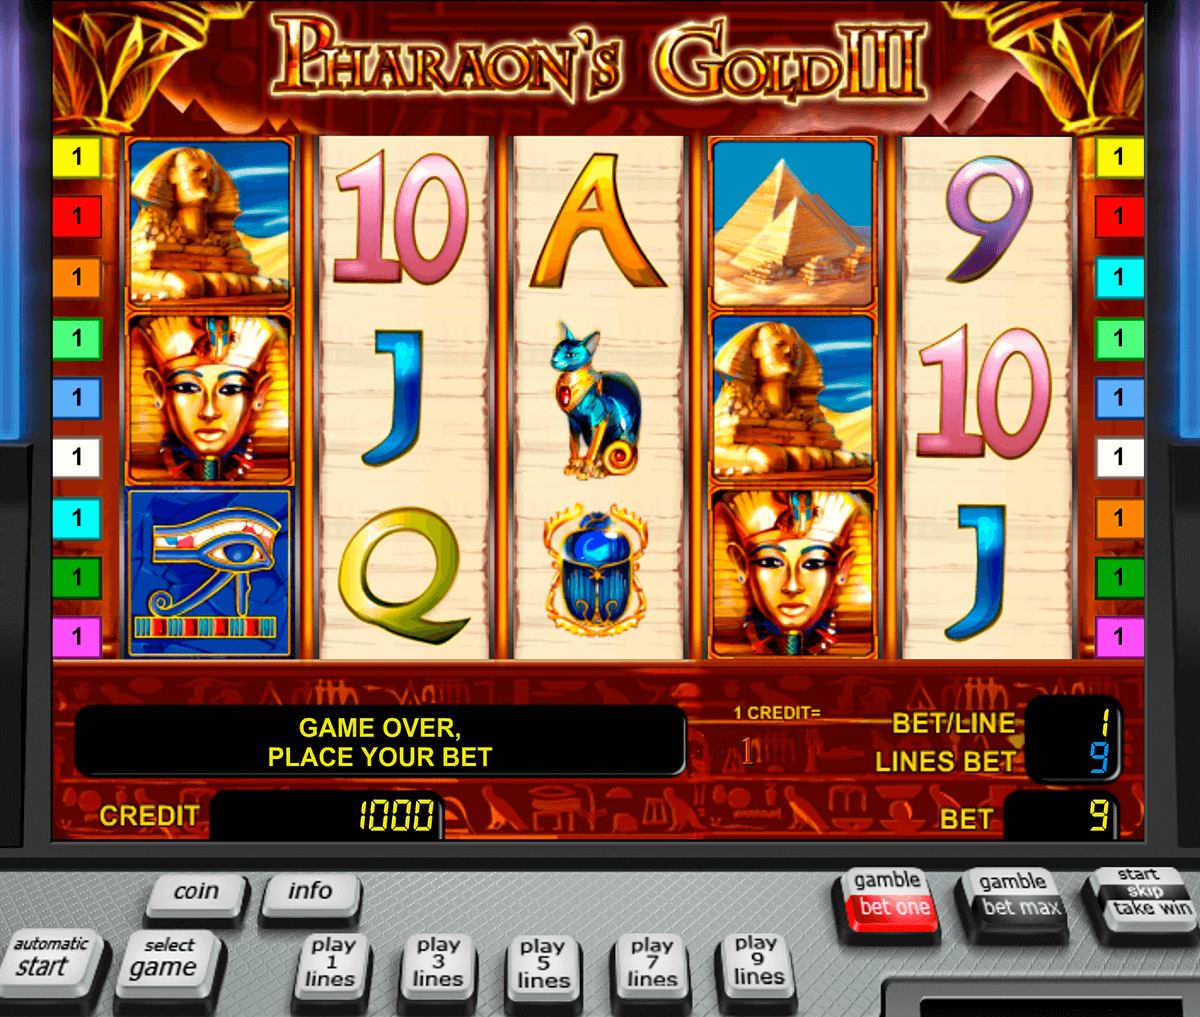 pharaohs gold iii novomatic casinospil online